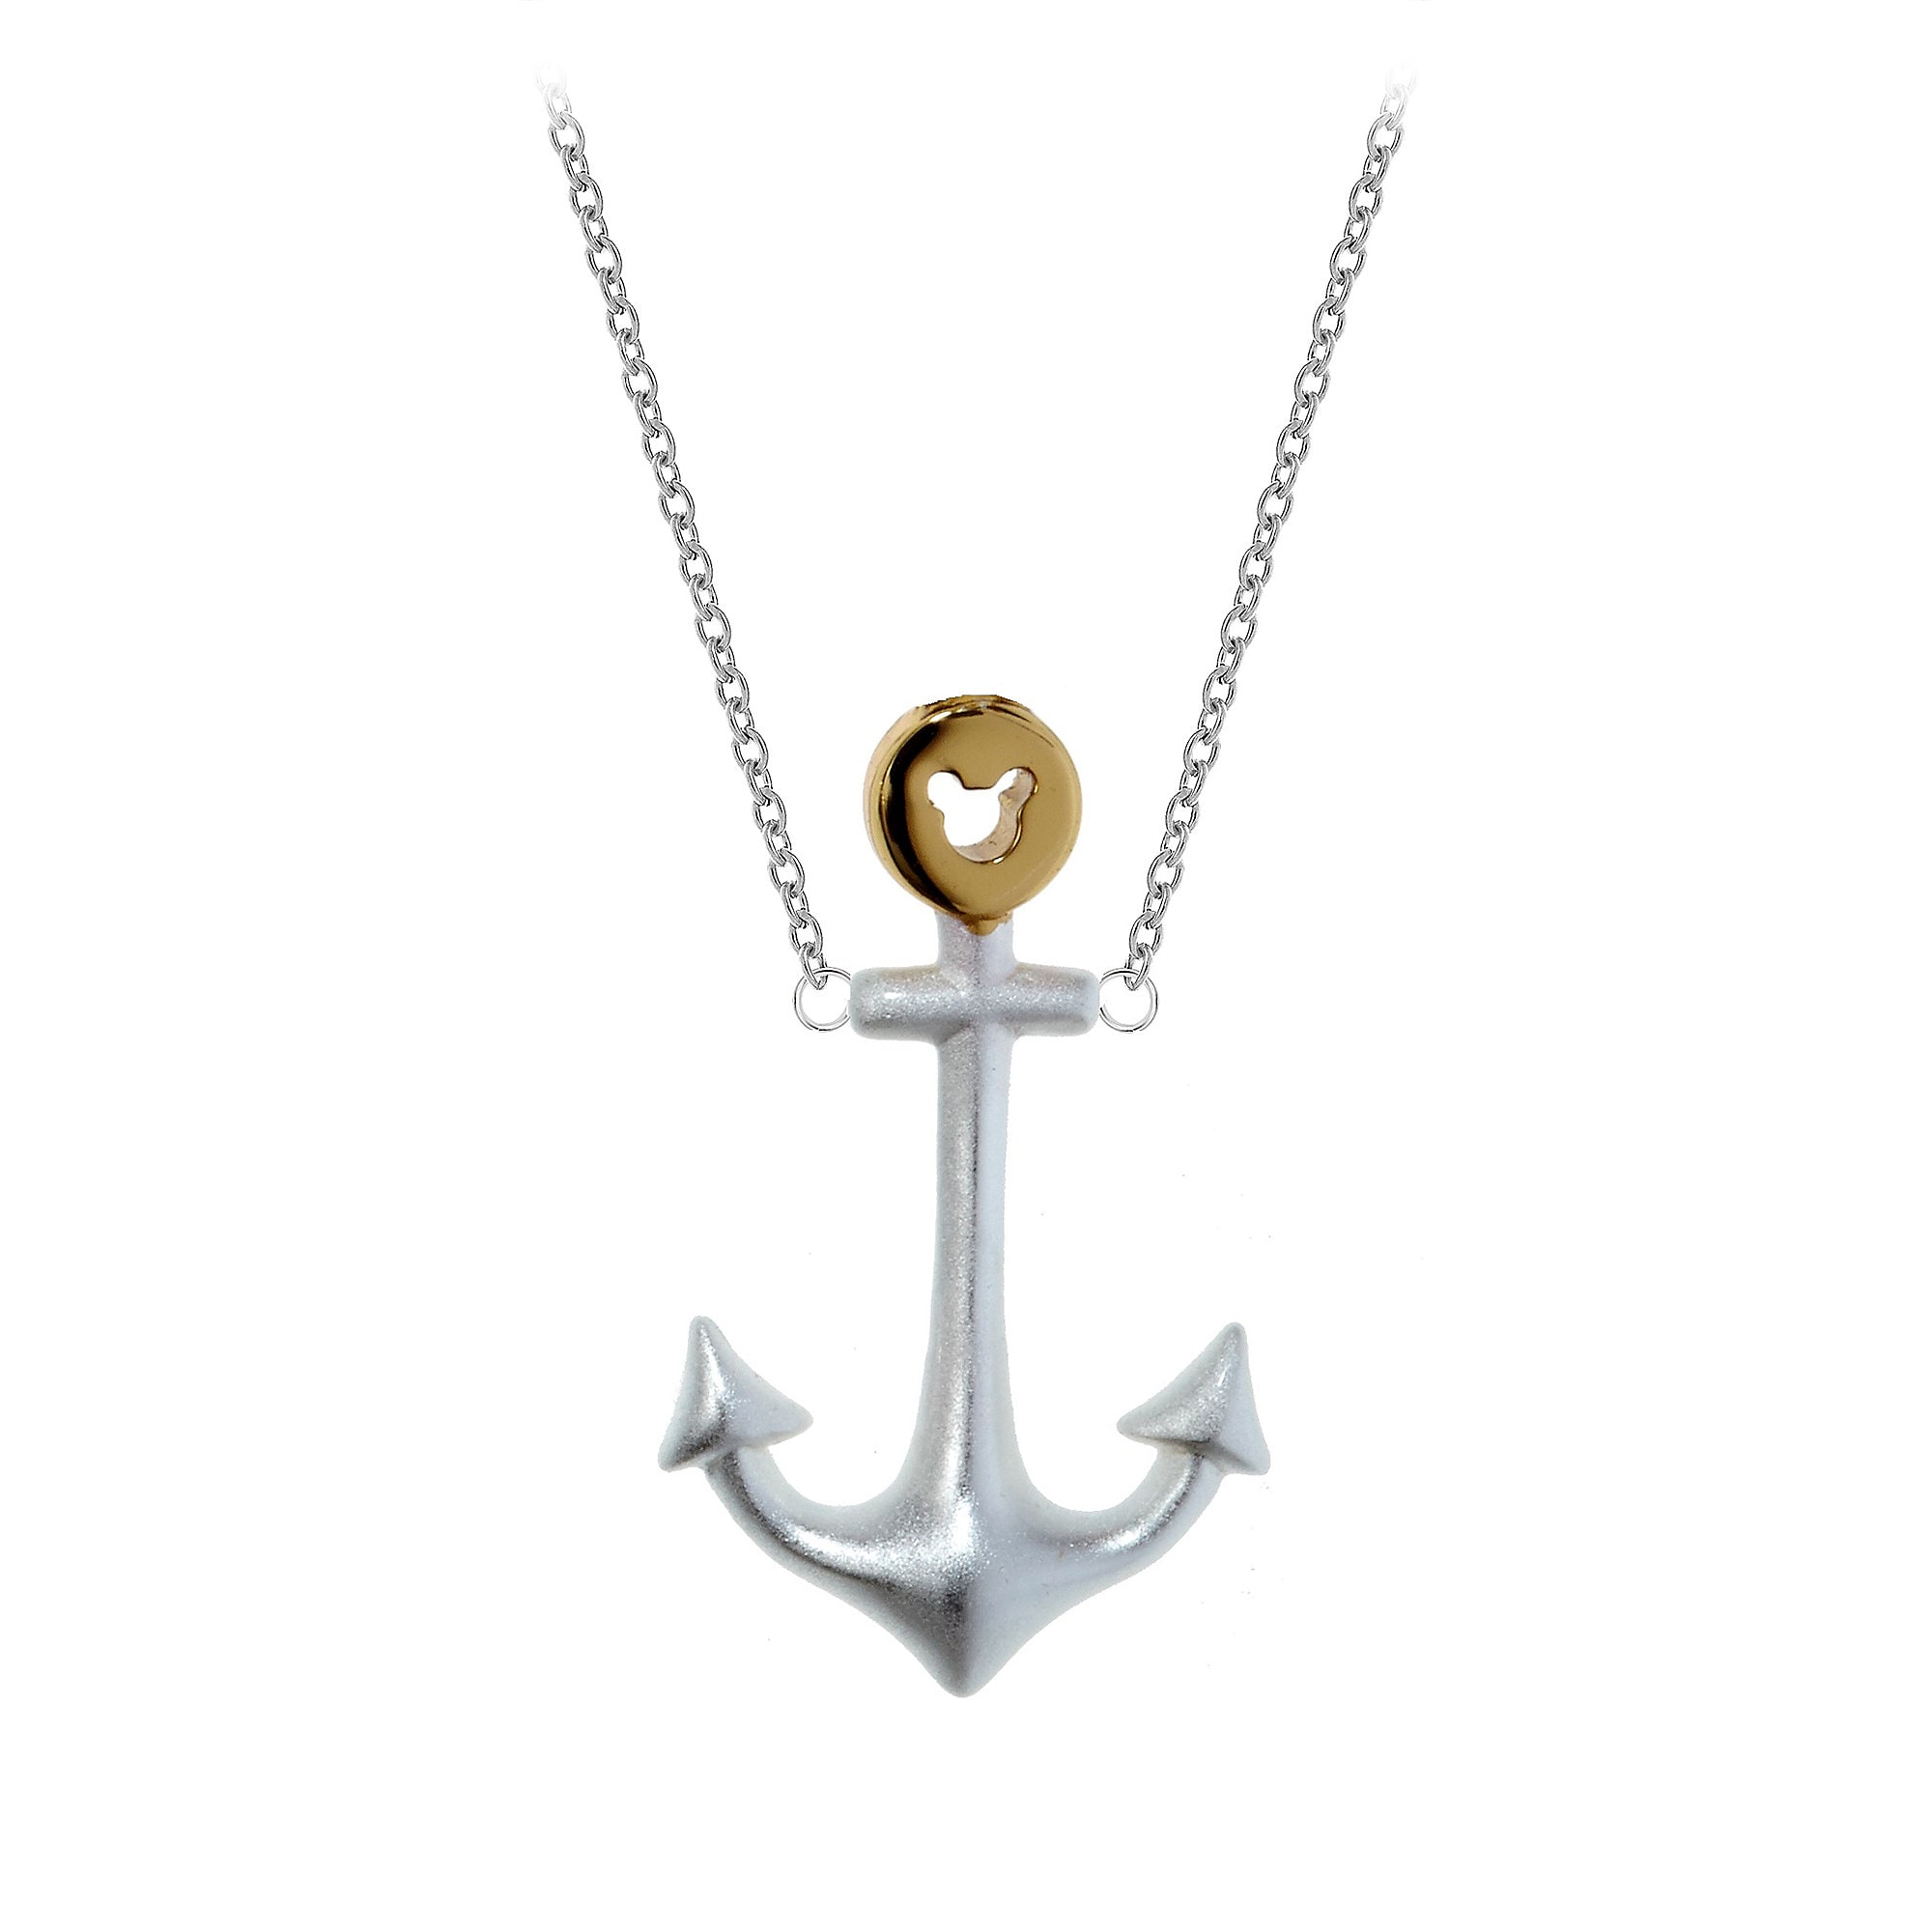 marcozo chain products silver necklace p anchor jm white download gold plated edit